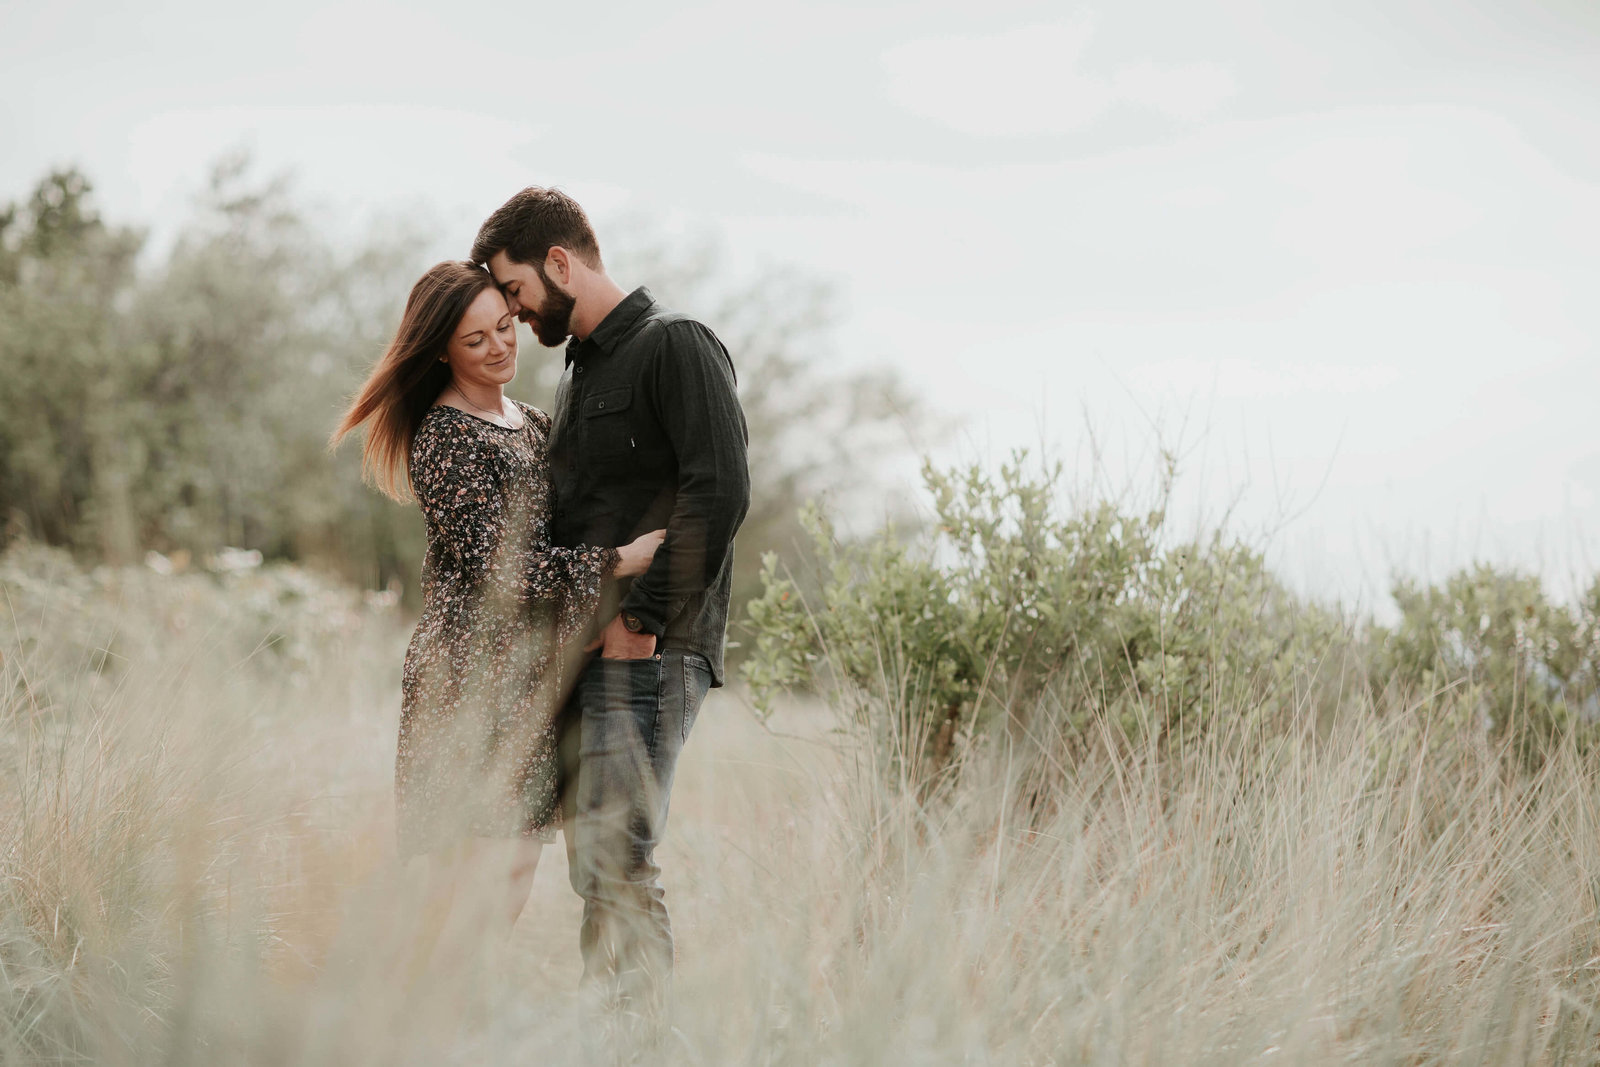 Discovery-Park-Engagement-Chelsey+Troy-by-Adina-Preston-Photography-2019-23